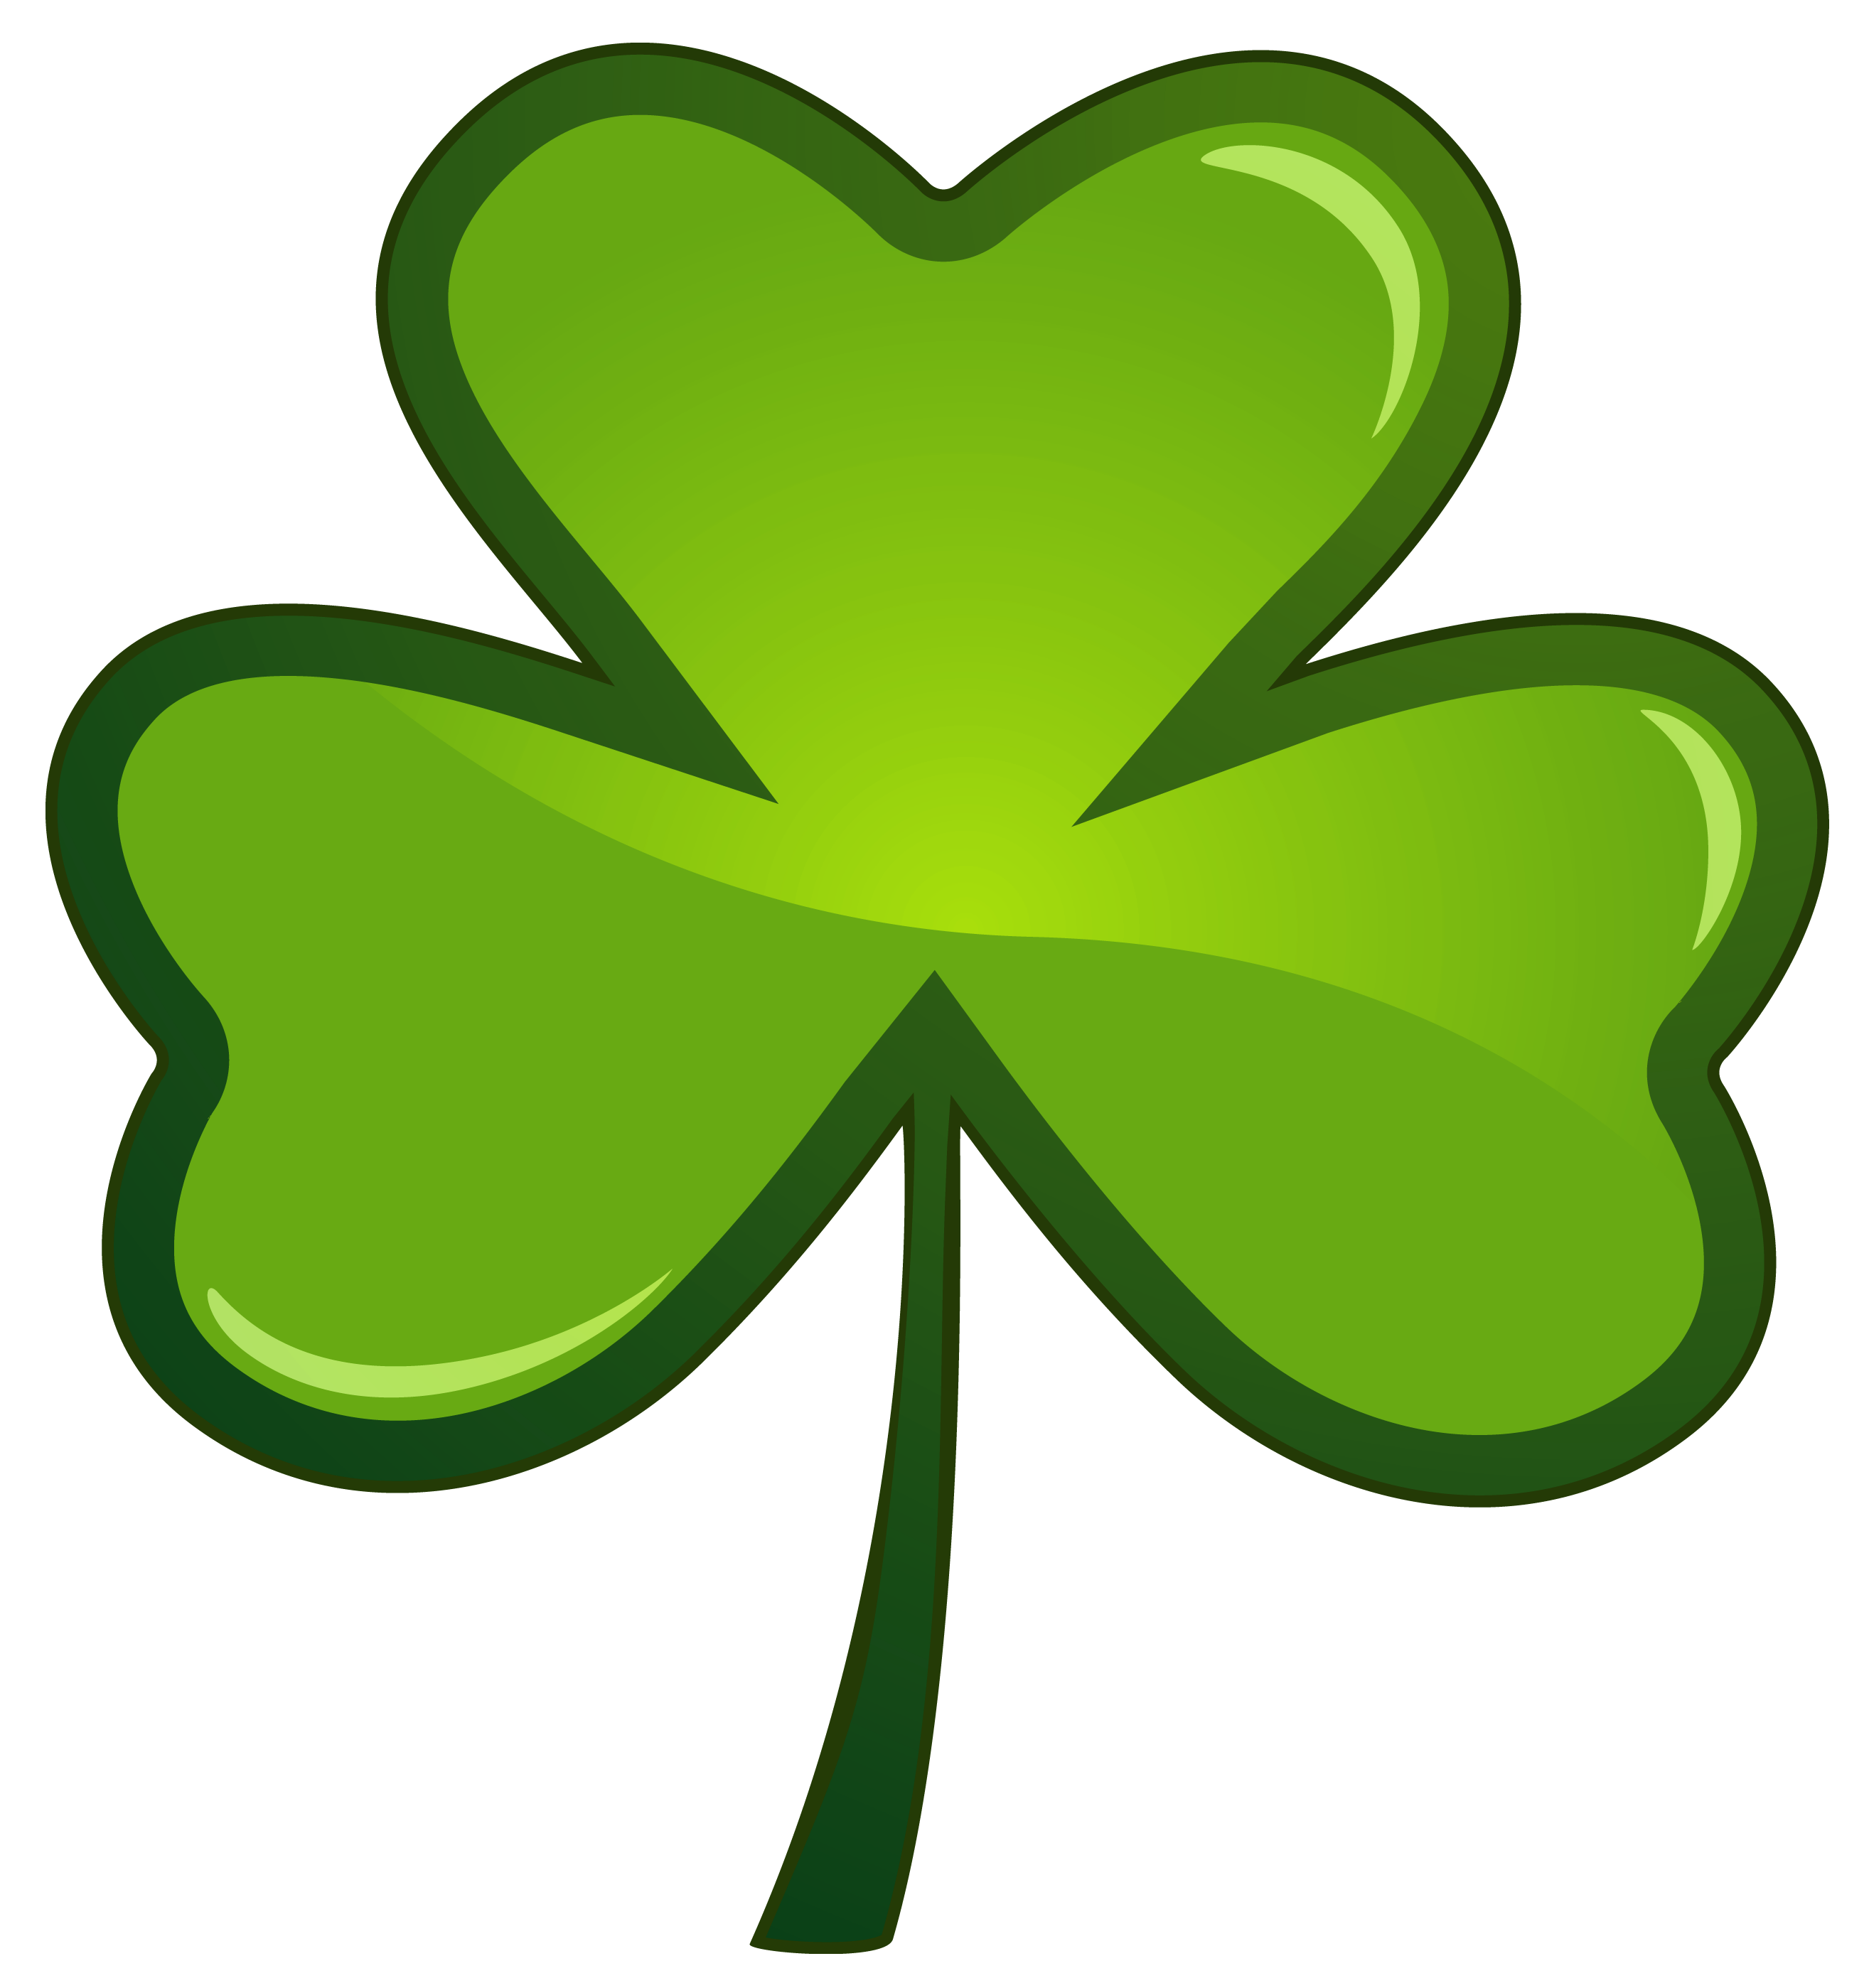 st patricks day st patrick cliparts 5 rh clipart info free animated st patricks day clipart